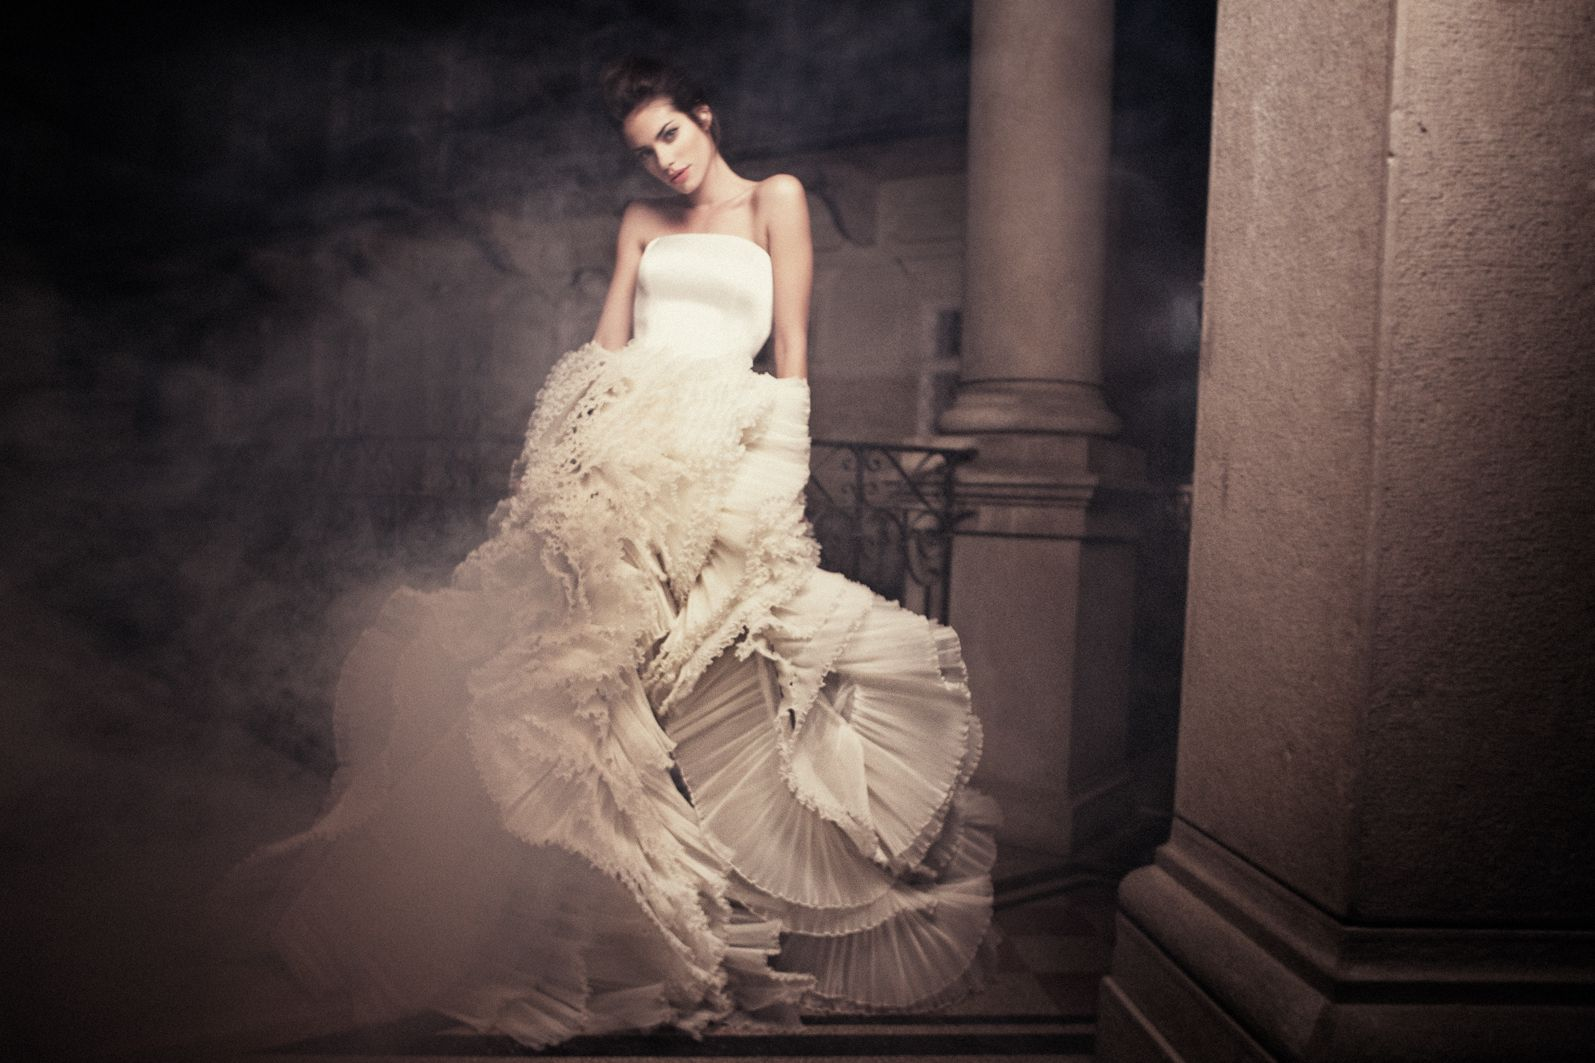 Daalarna wedding dresses and evening gowns of fashion designer